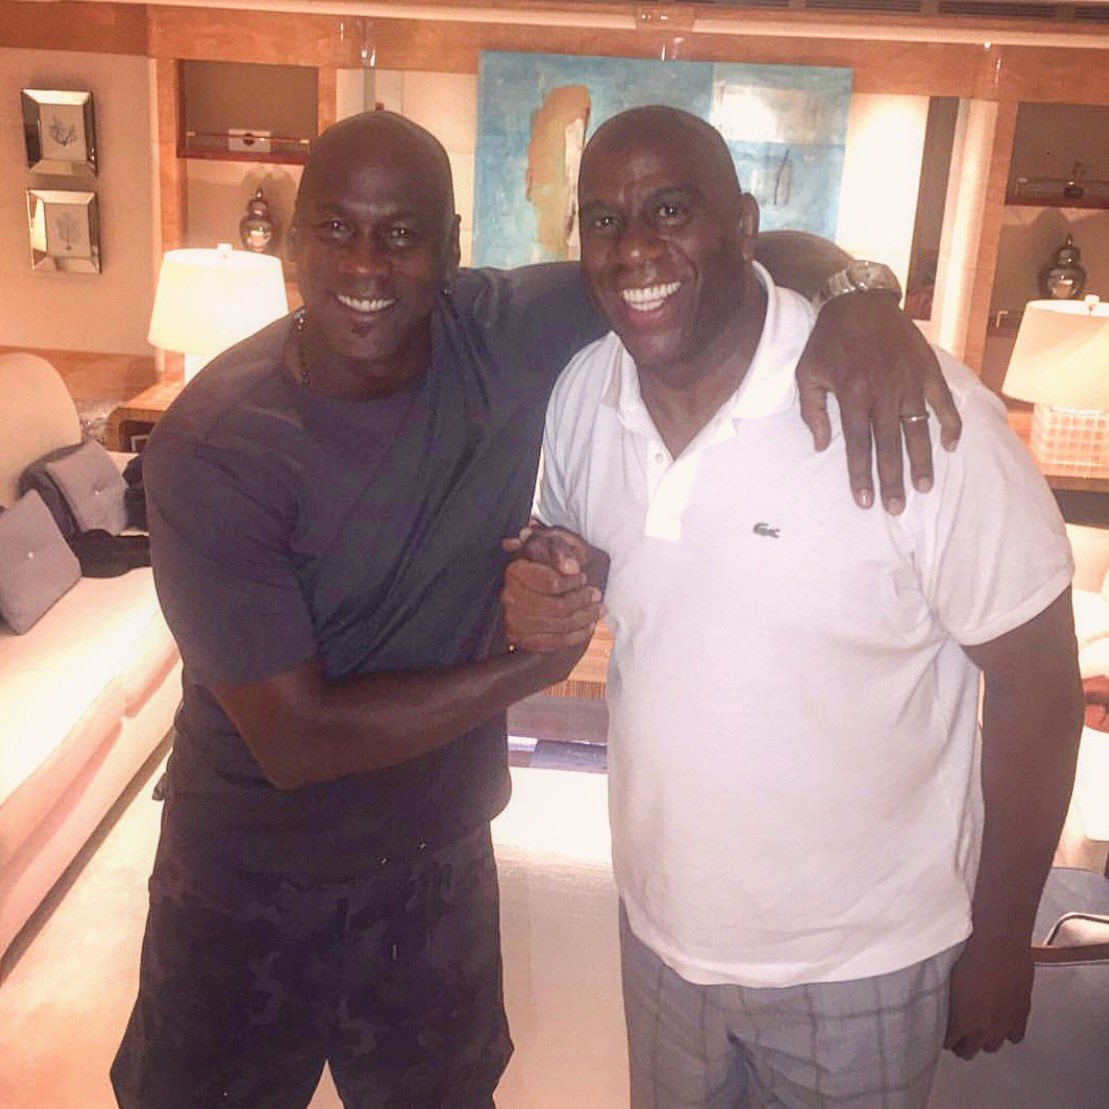 Happy birthday to my friend, legend, and Dream Team teammate Michael Jordan! Great to see you this weekend. Wishing you many blessings in this next year of your life!